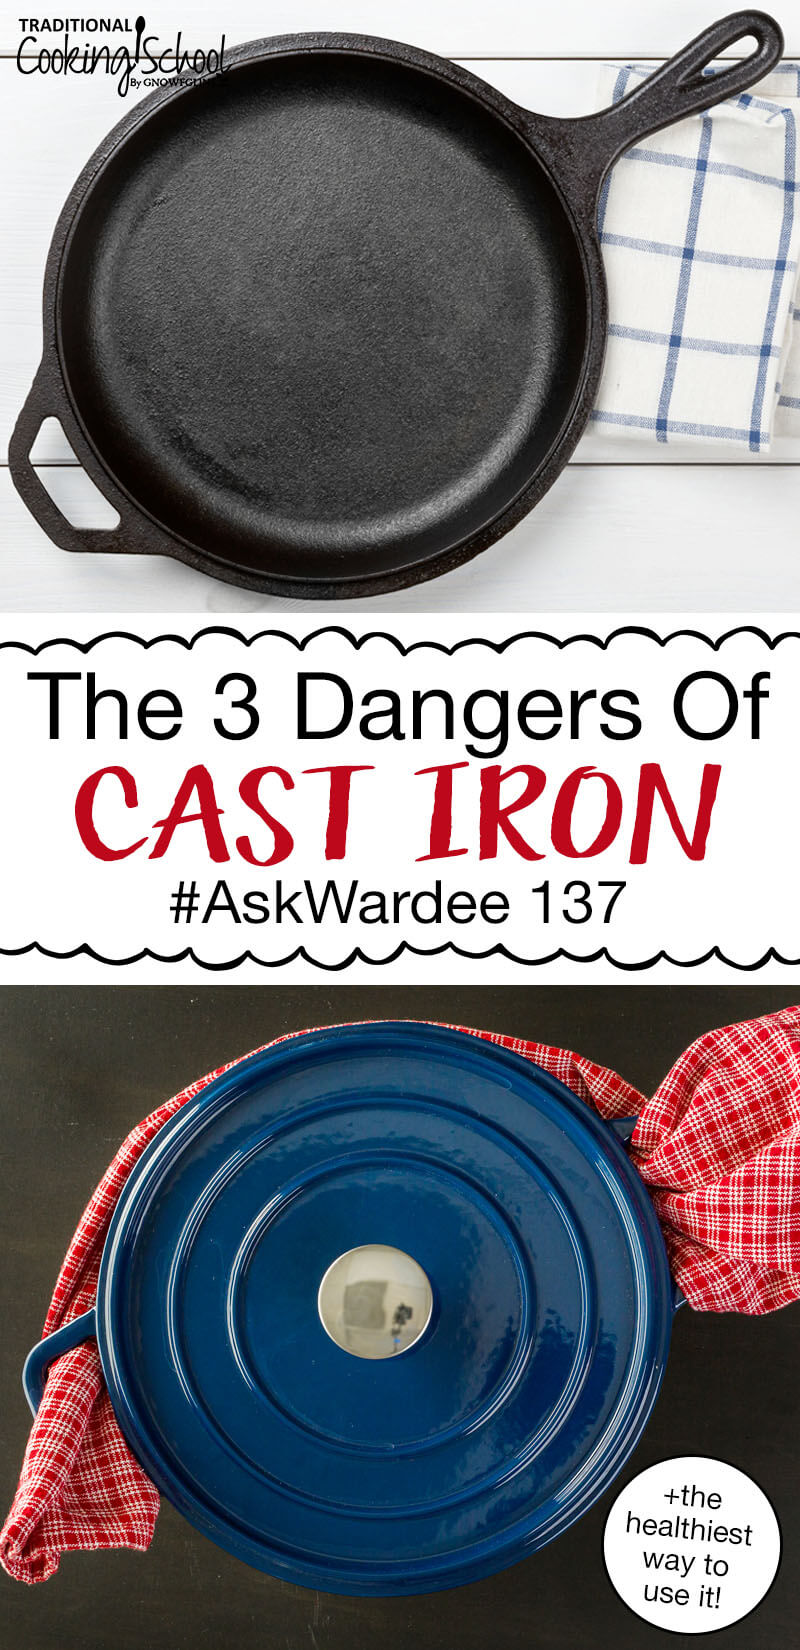 """photo collage of a well-seasoned cast iron skillet and a blue enamel cast iron Dutch oven with text overlay: """"The 3 Dangers Of Cast Iron (+the healthiest way to use it!) #AskWardee 137"""""""